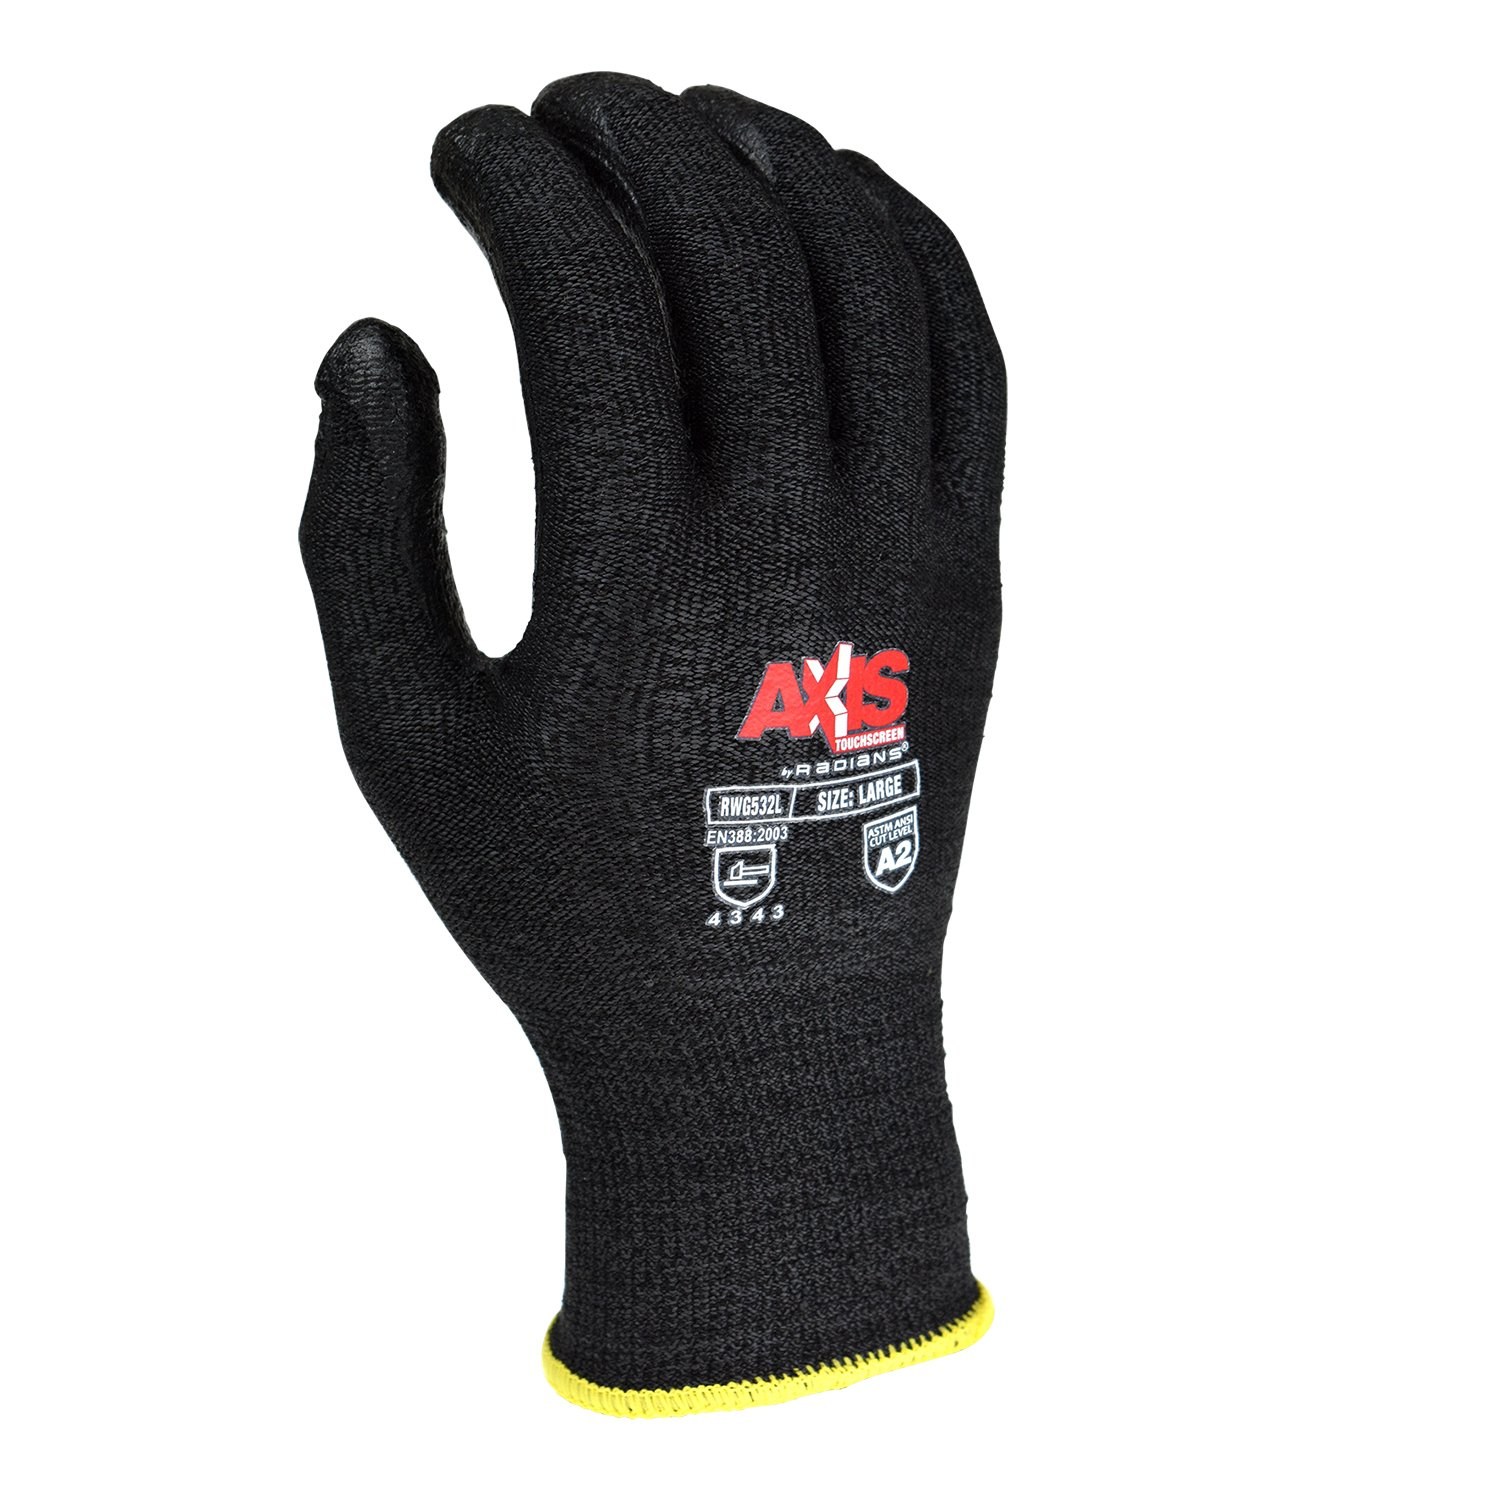 Radians RWG532L Axis Touchscreen Cut Protection Level 3 Work Glove, Large